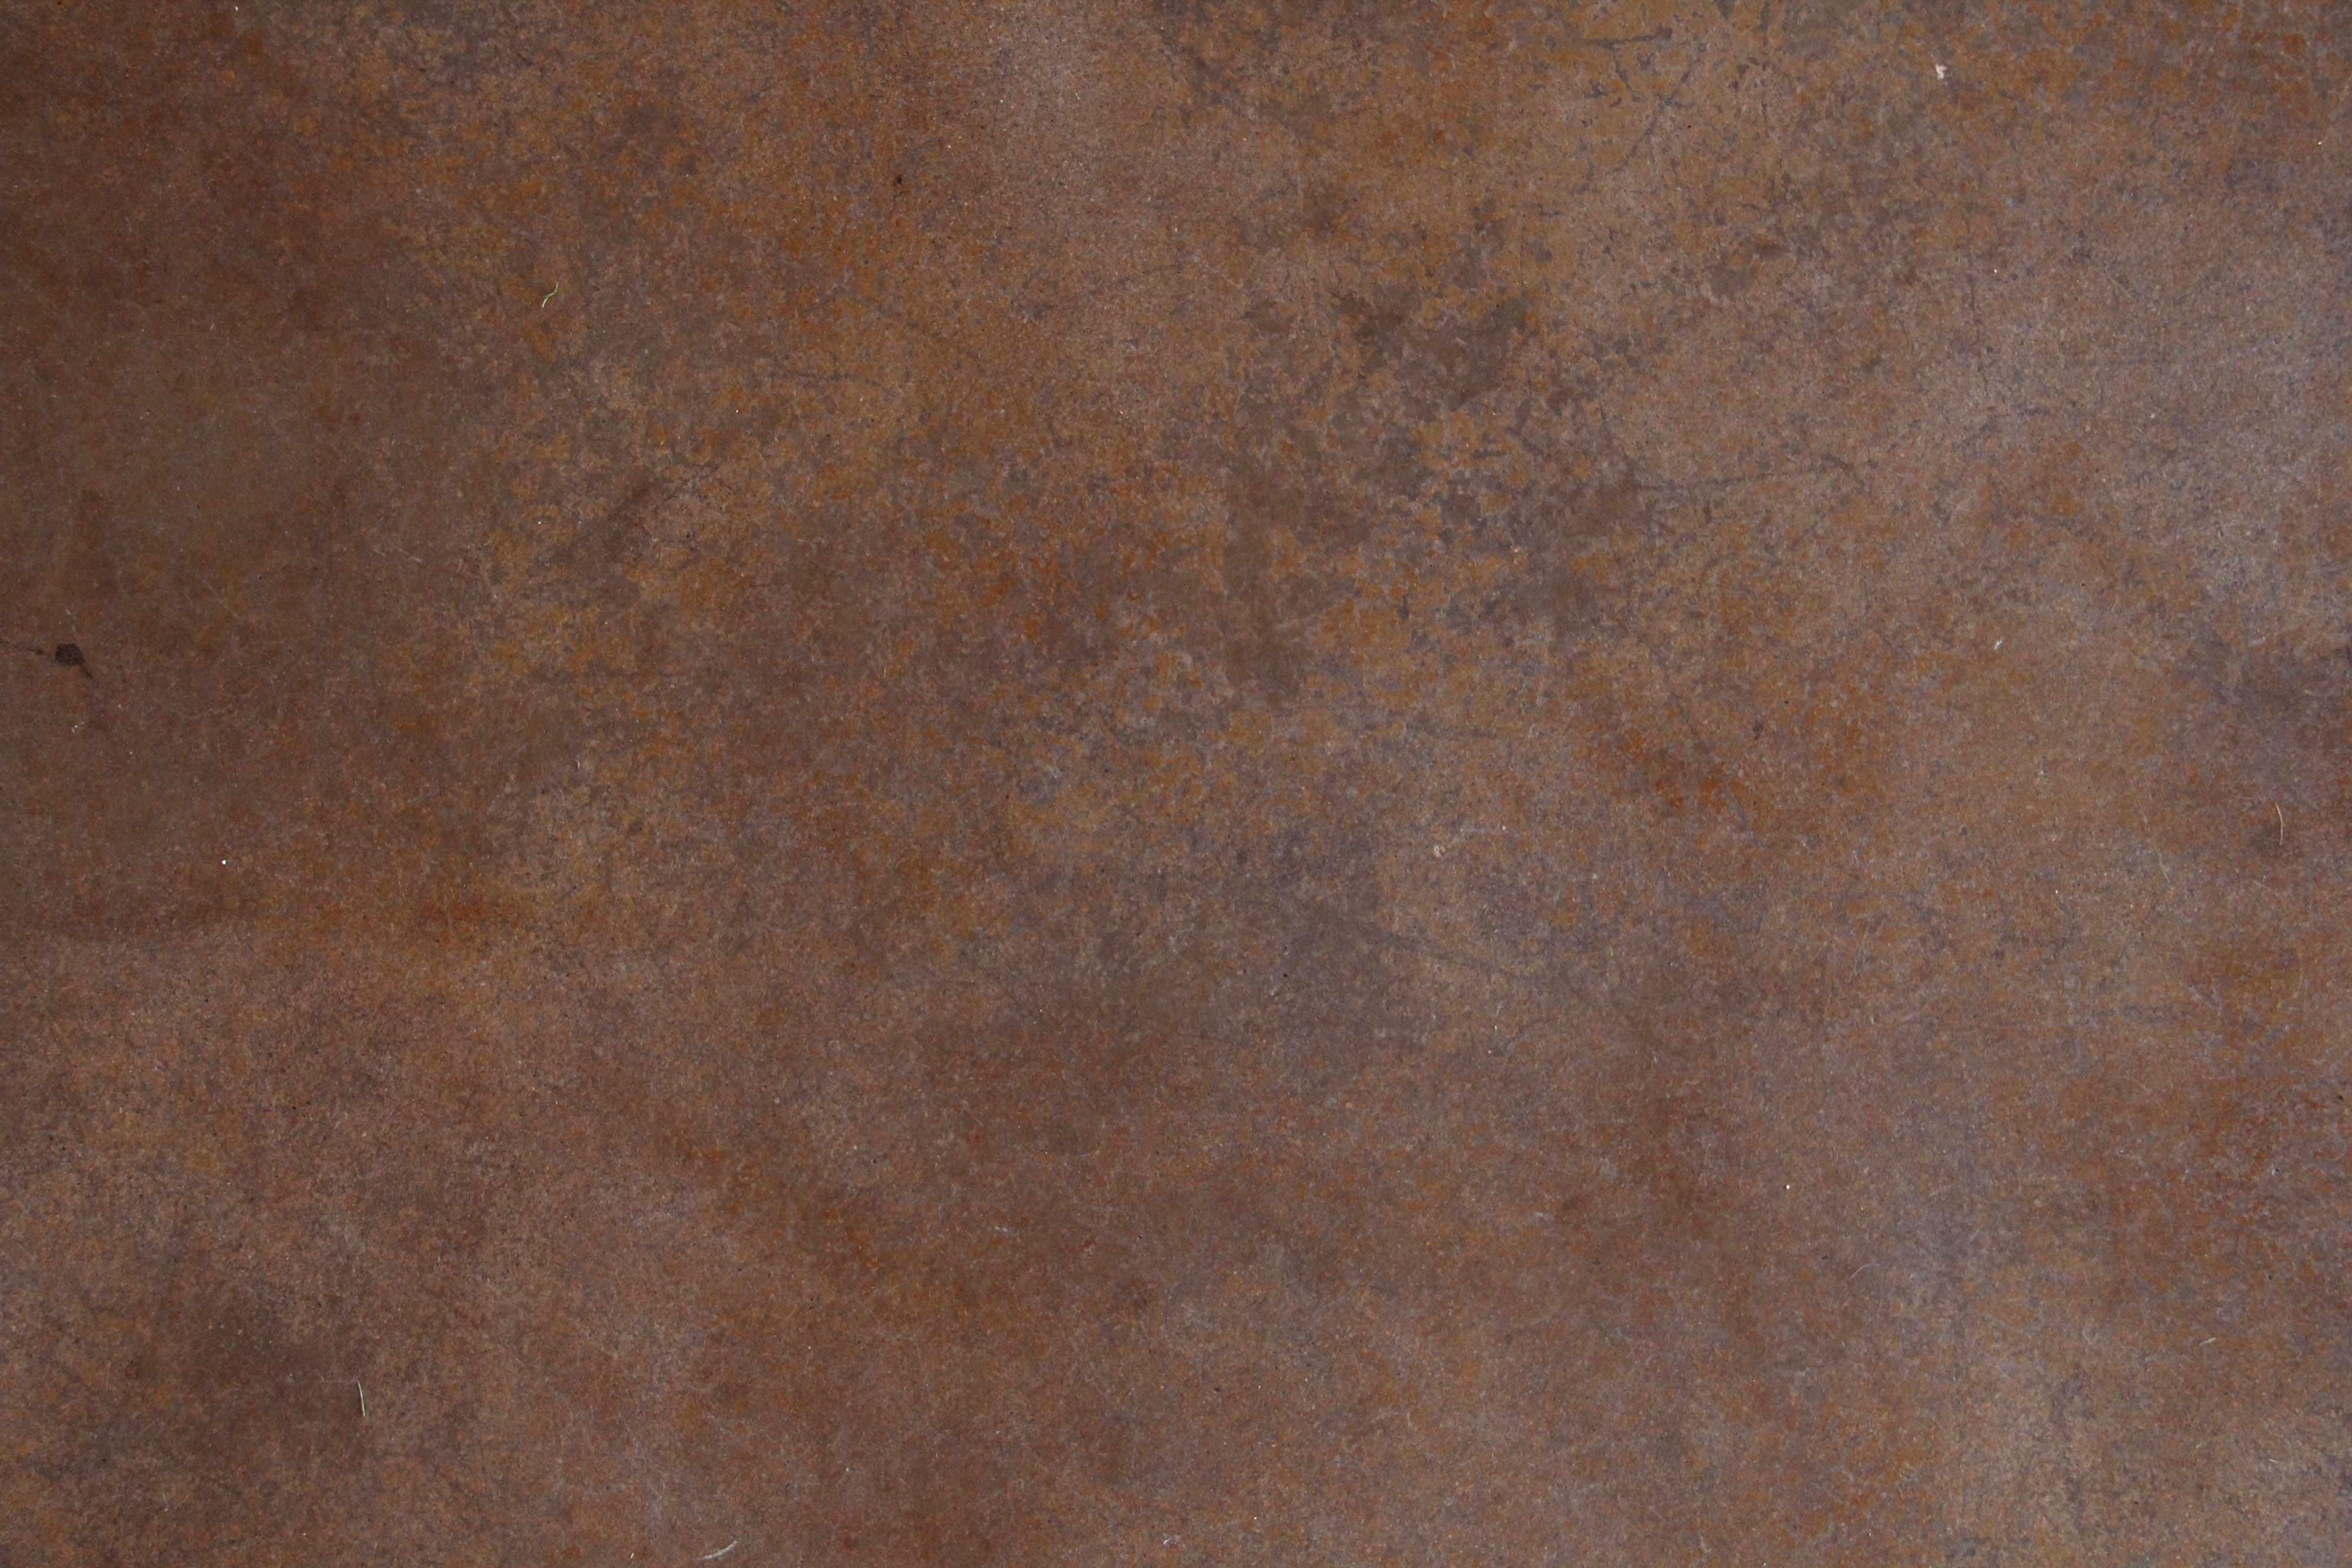 Brown Textured Concrete : Grunge textures archives page of texturex free